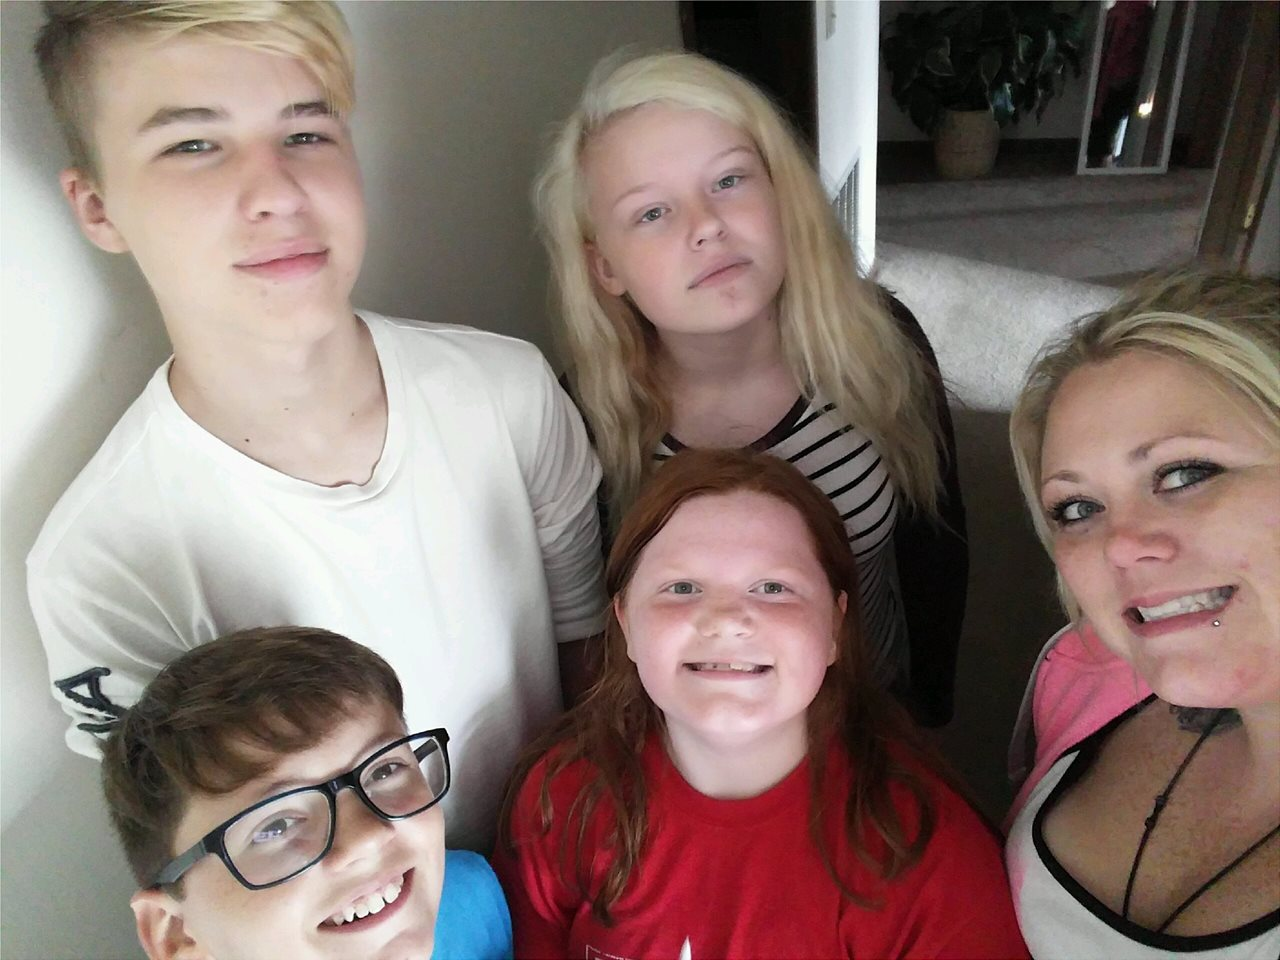 Top left to right. Son, daughter, under her is step daughter right of her is my girlfriend. Kid with